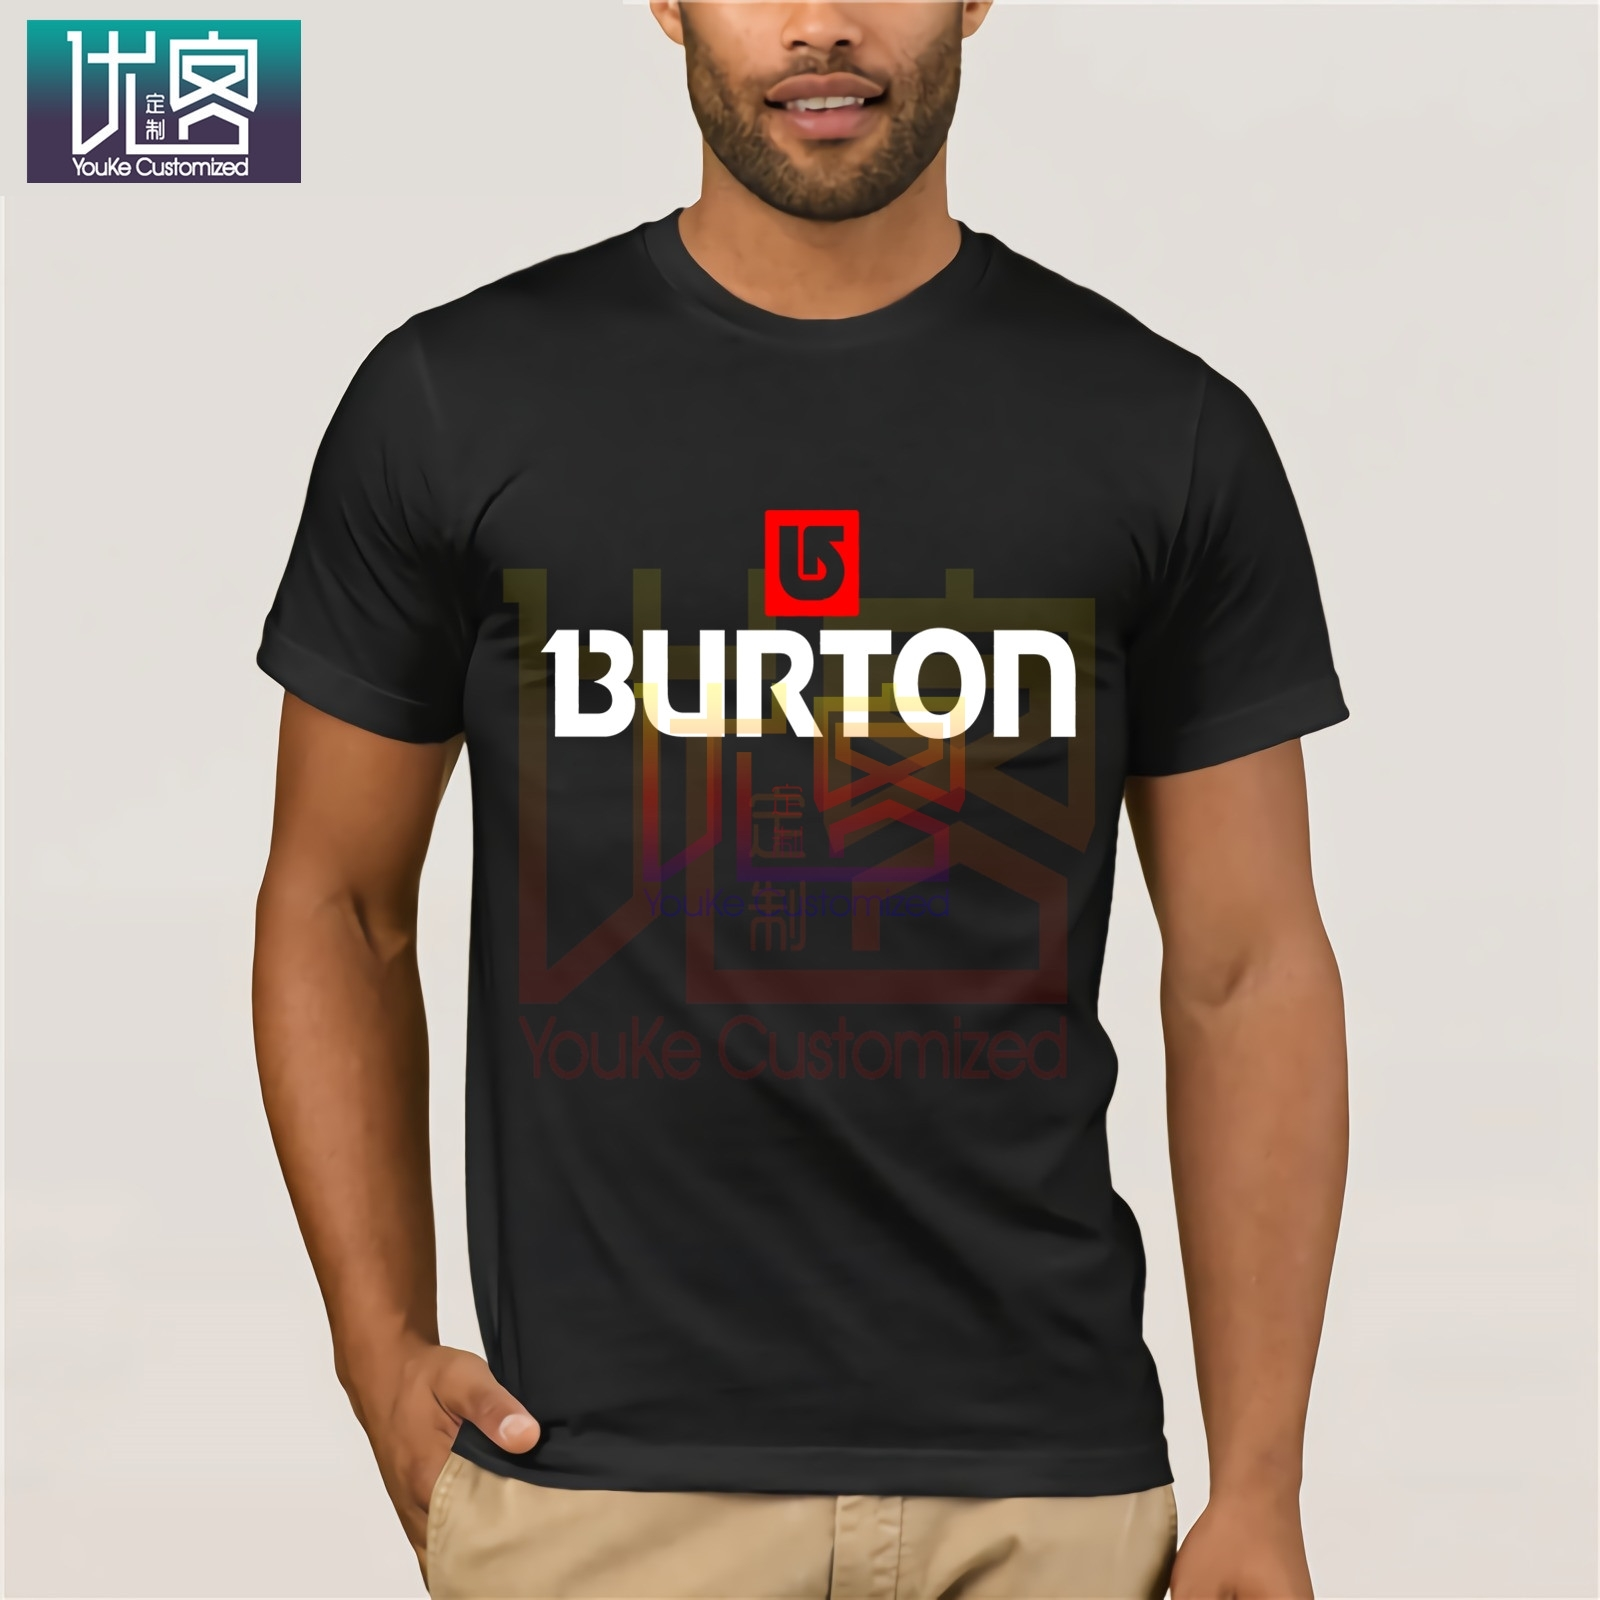 Burton Arrow Logo Snowboards T Shirt Cartoon Tee Shirt Homme Top Tees Men Cool 2020 Shirt Tops Summer Tees Cotton O Neck T-Shirt